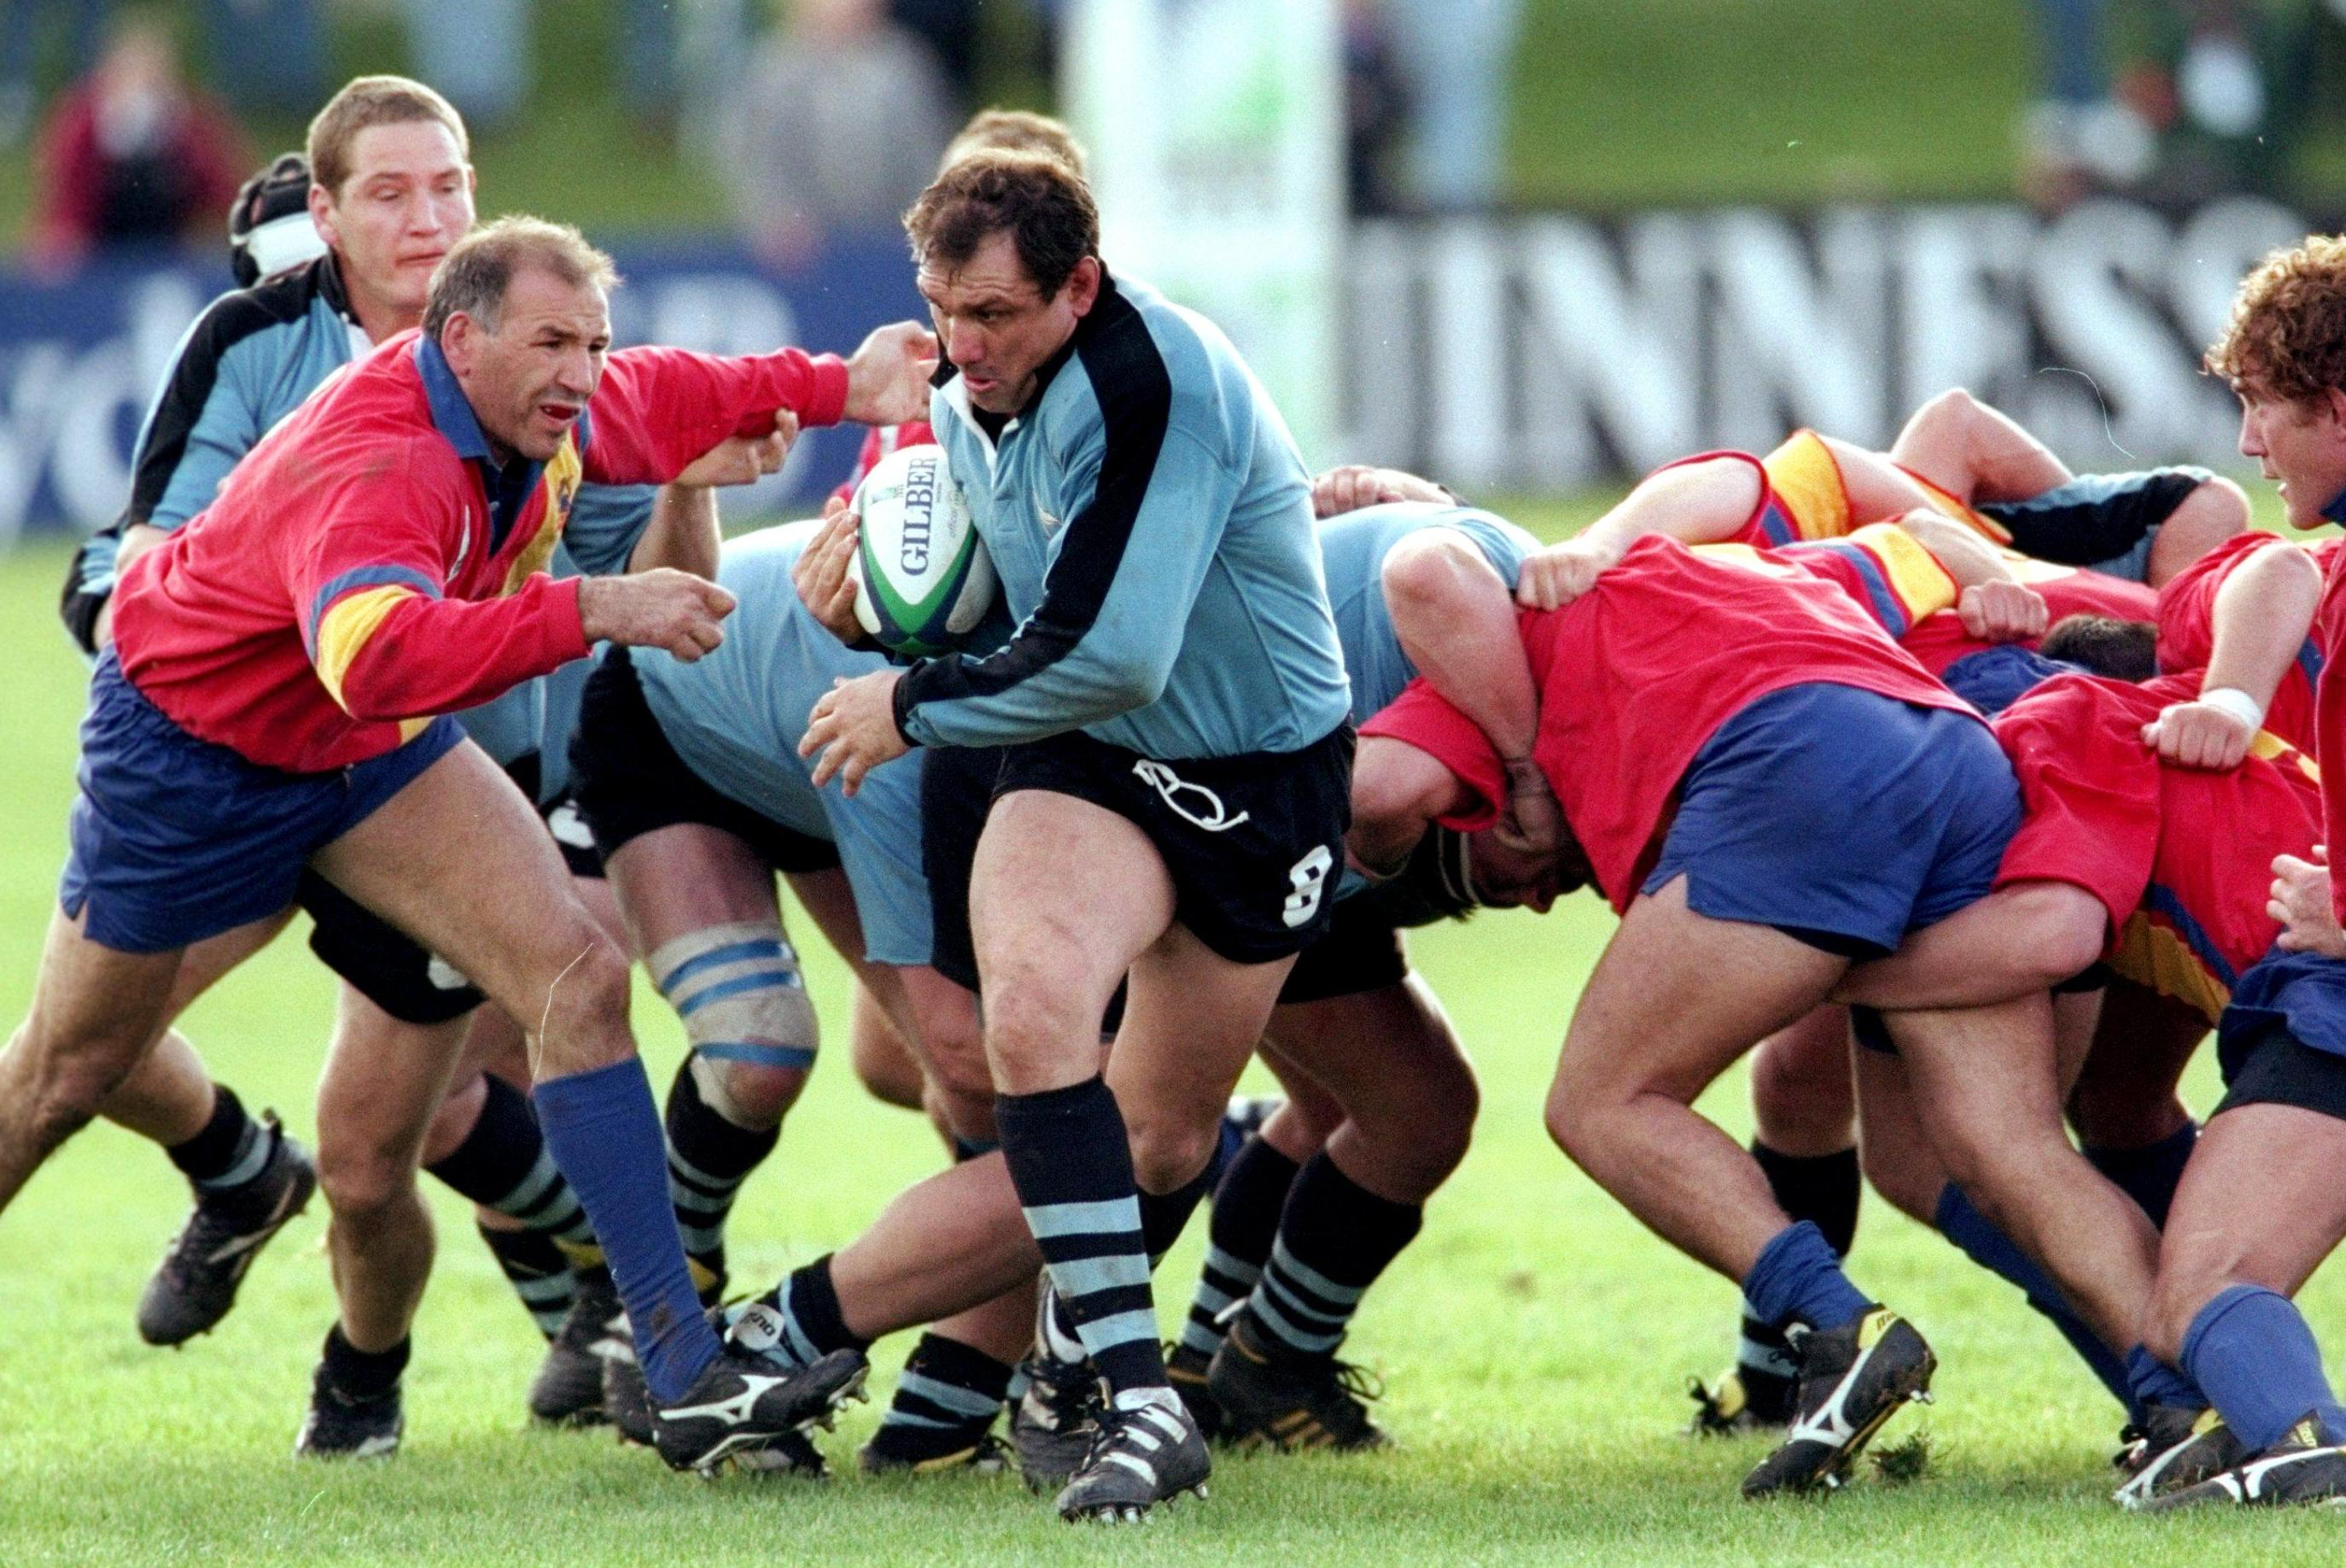 Ormaechea Uruguayan Rugby Icon And Now Dynasty Rugby World Cup Rugbyworldcup Com